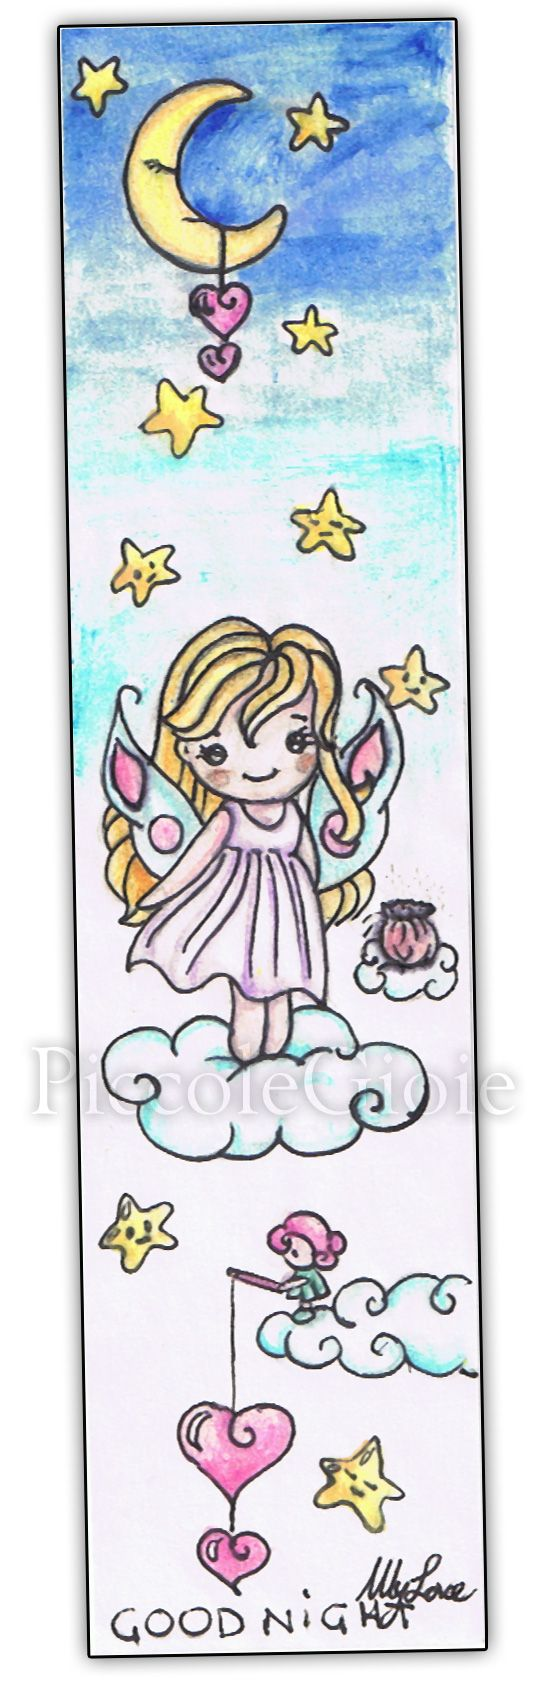 #bookmark #piccolegioie #drawings #dream #fairy sleep #kawaii #moon #stars #elf